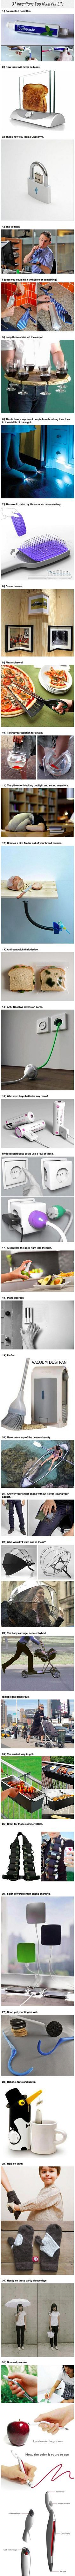 Here are some simple, yet genius, inventions you should have thought of first.